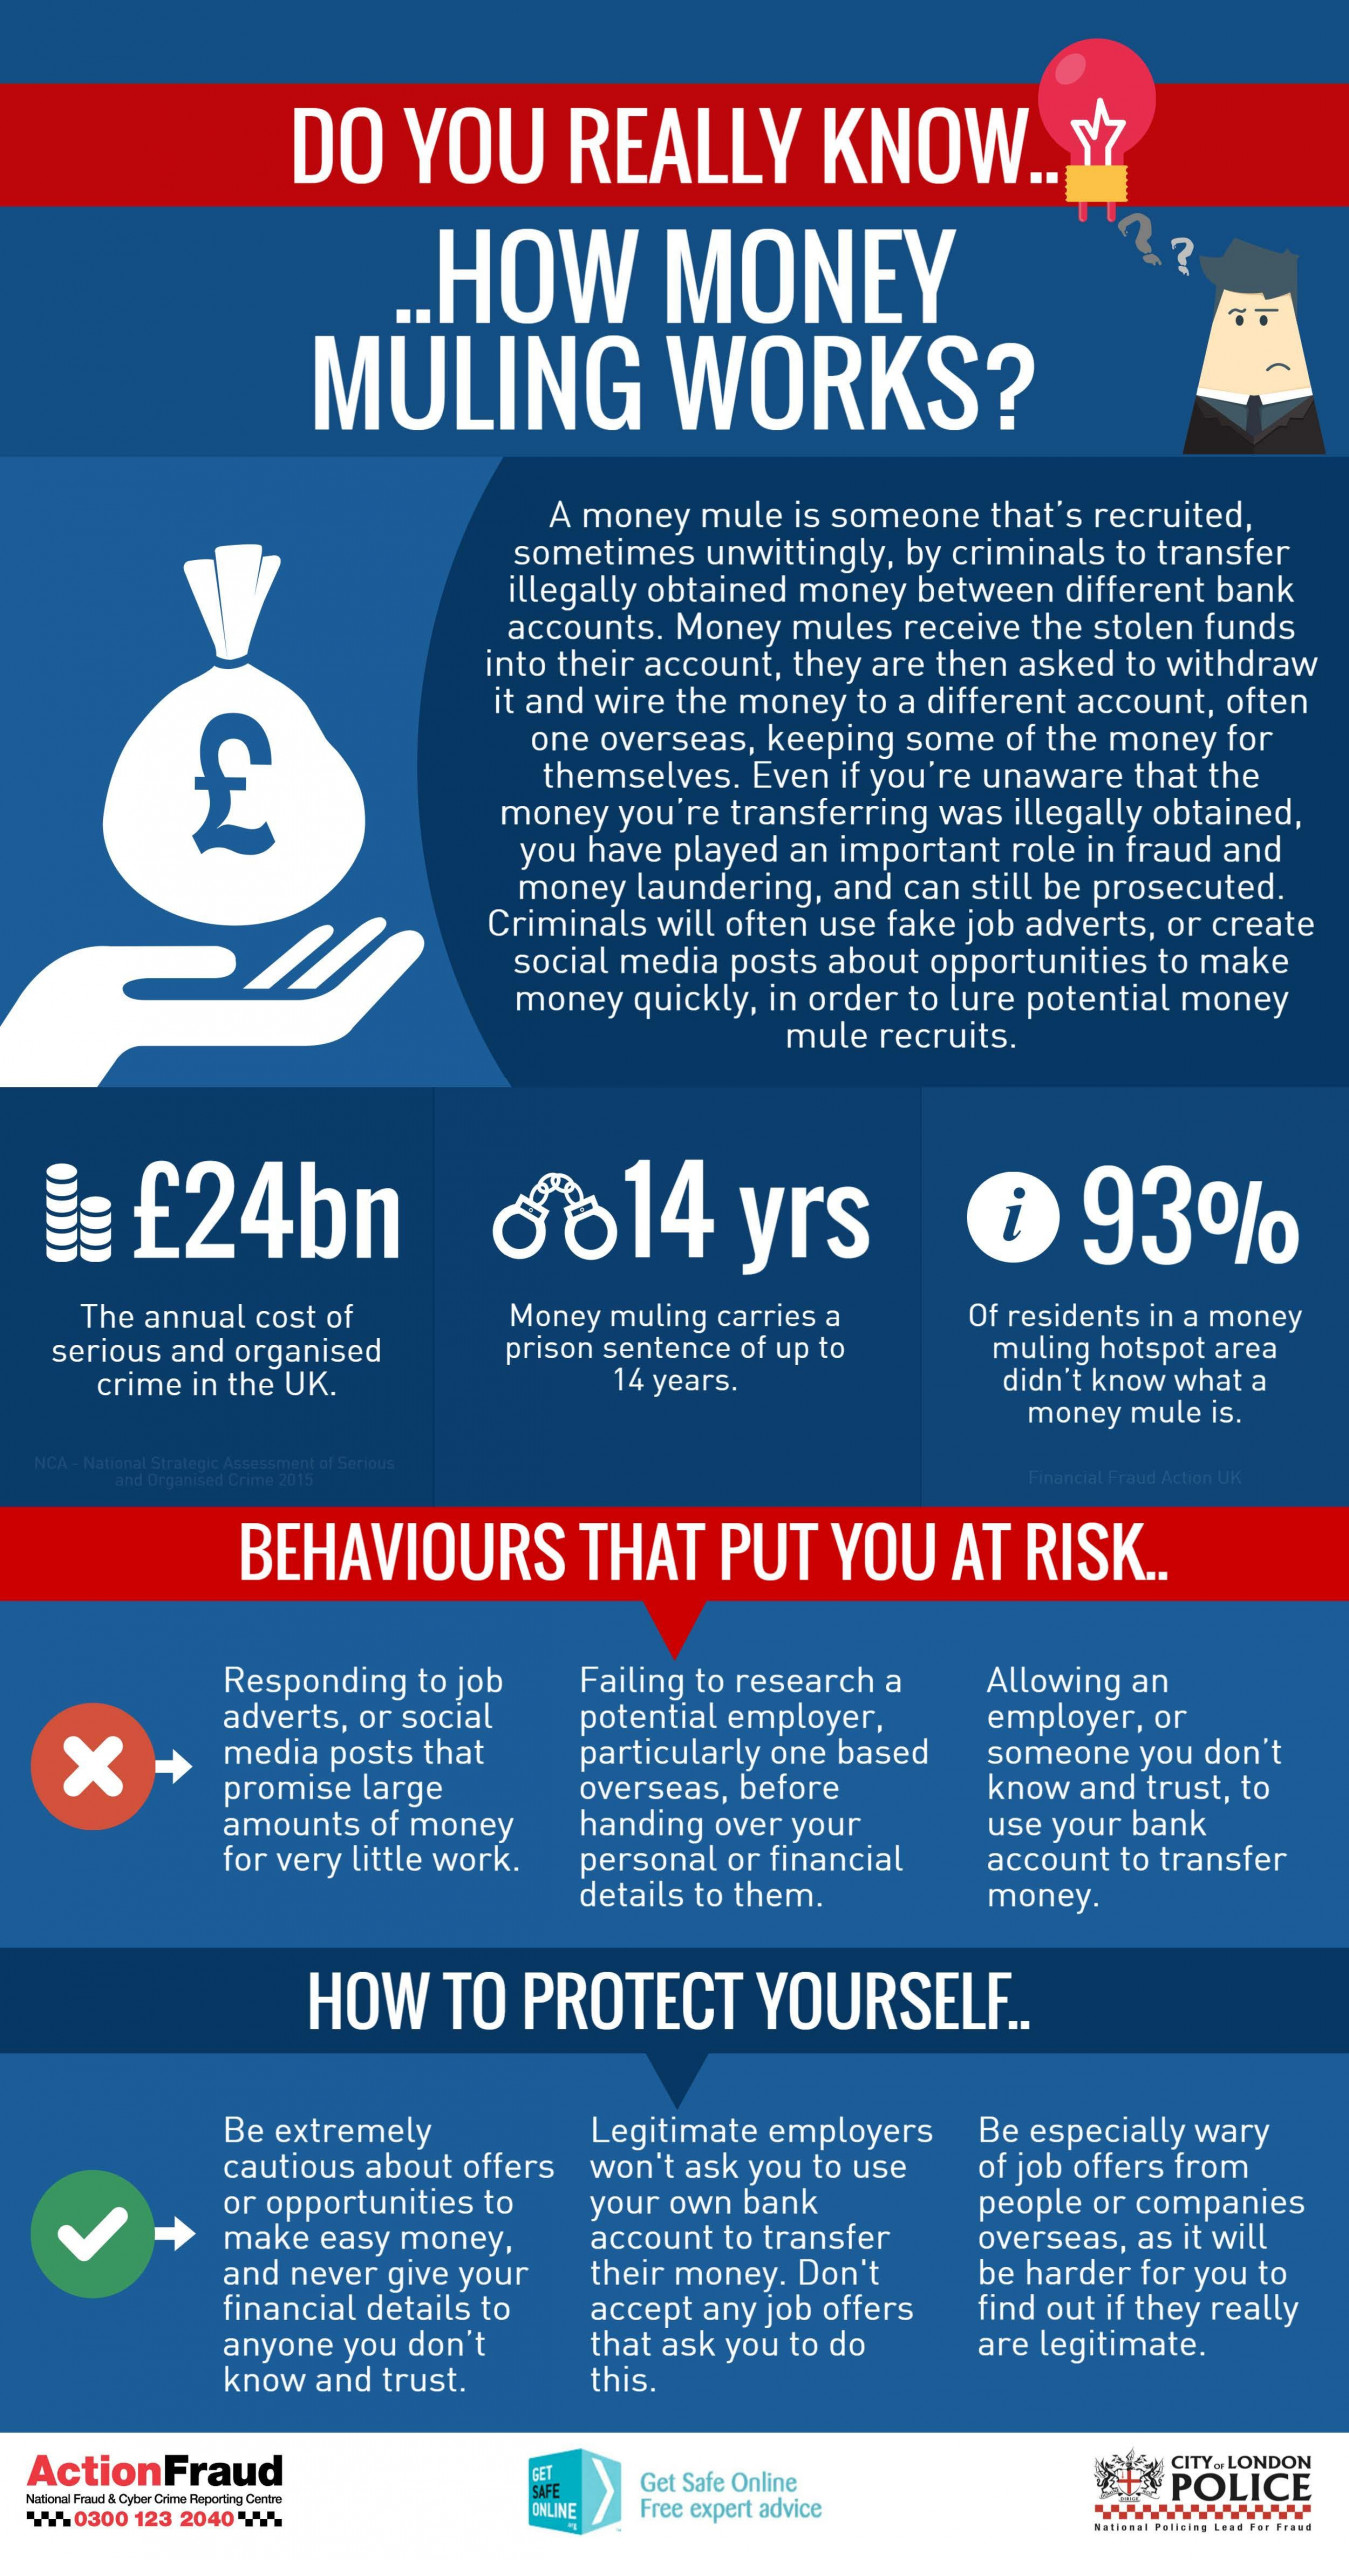 Money Mule Infographic from ActionFraud